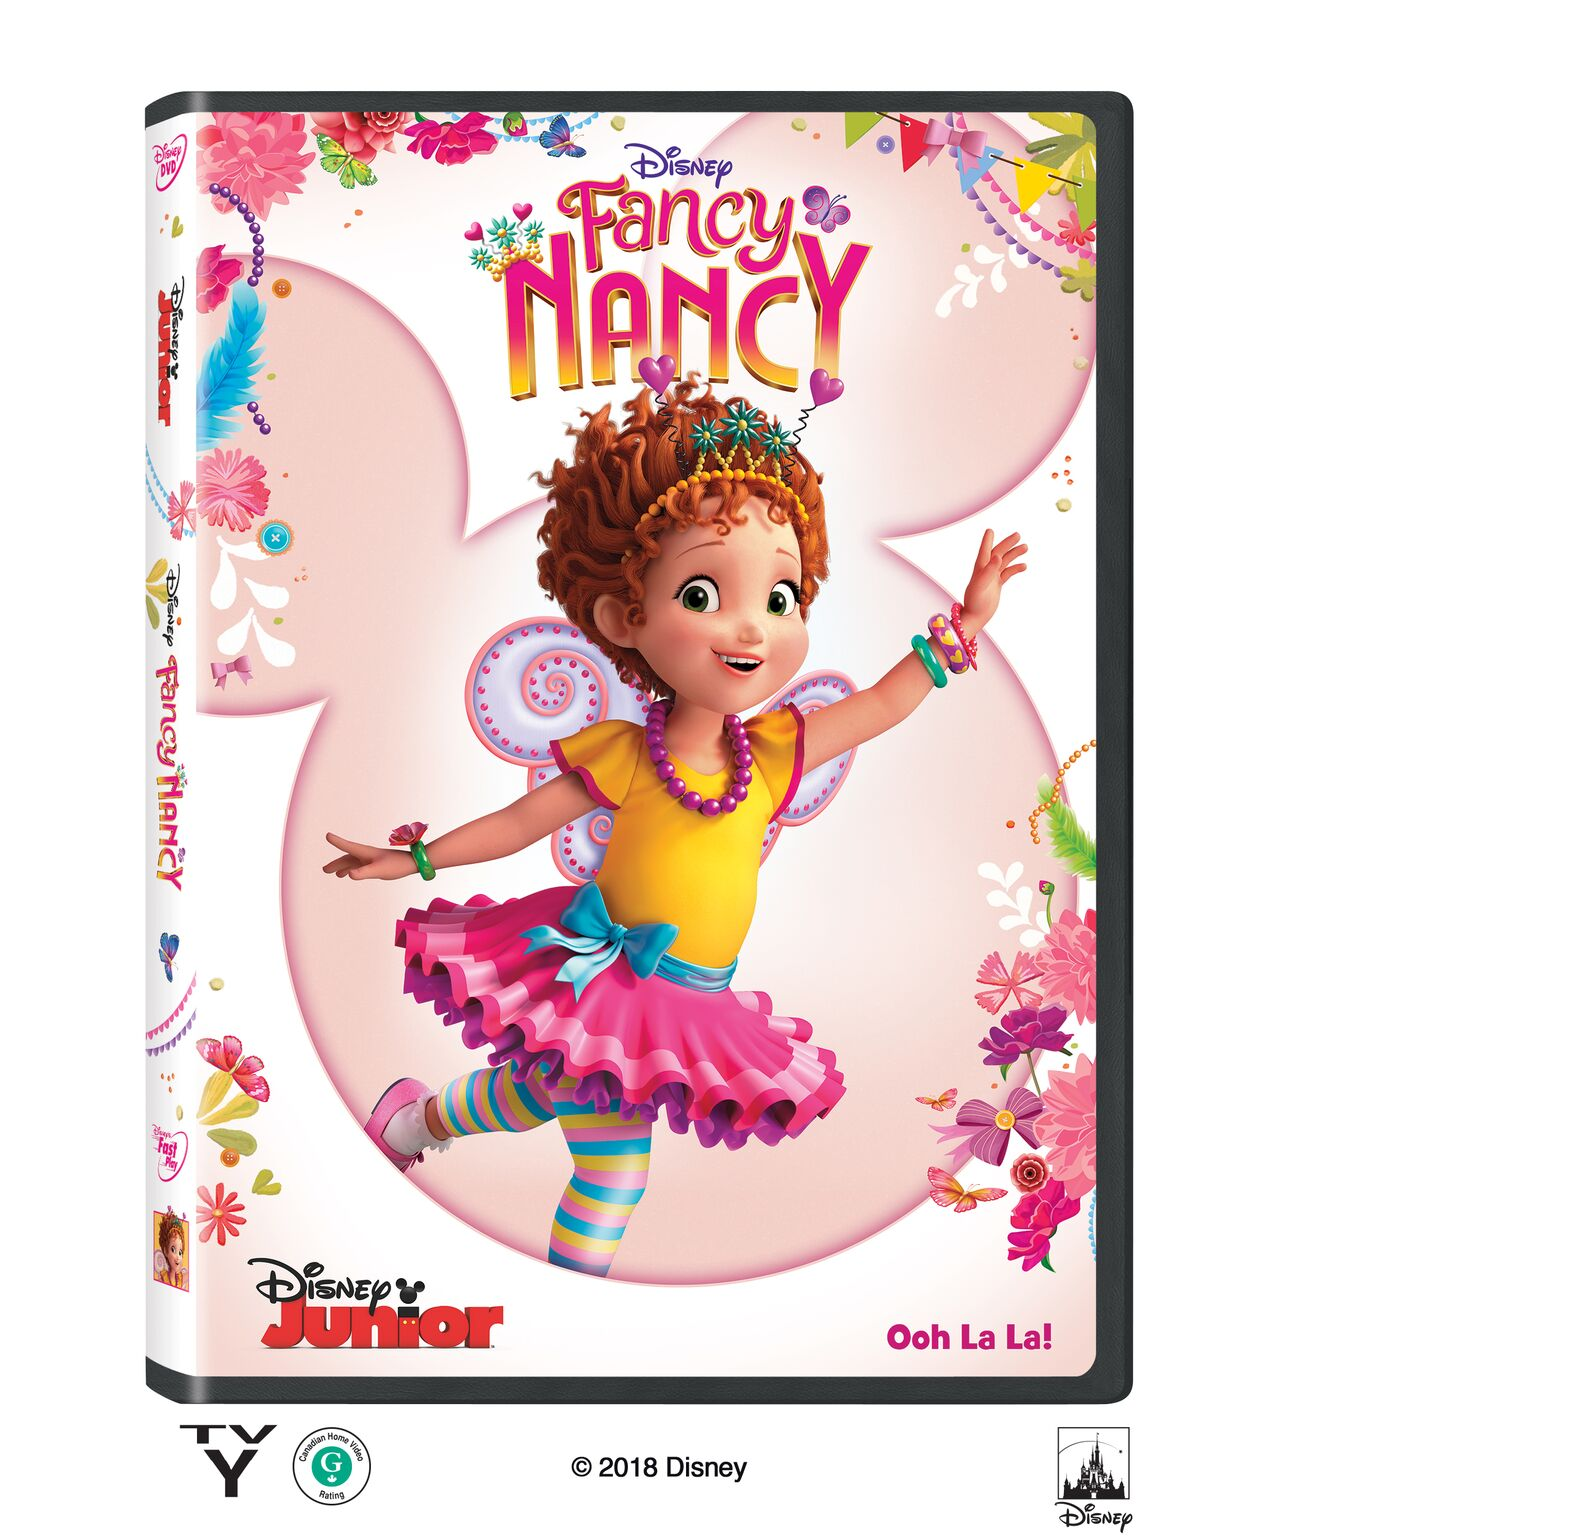 fancy nancy, vol 1, dVD, disney channel